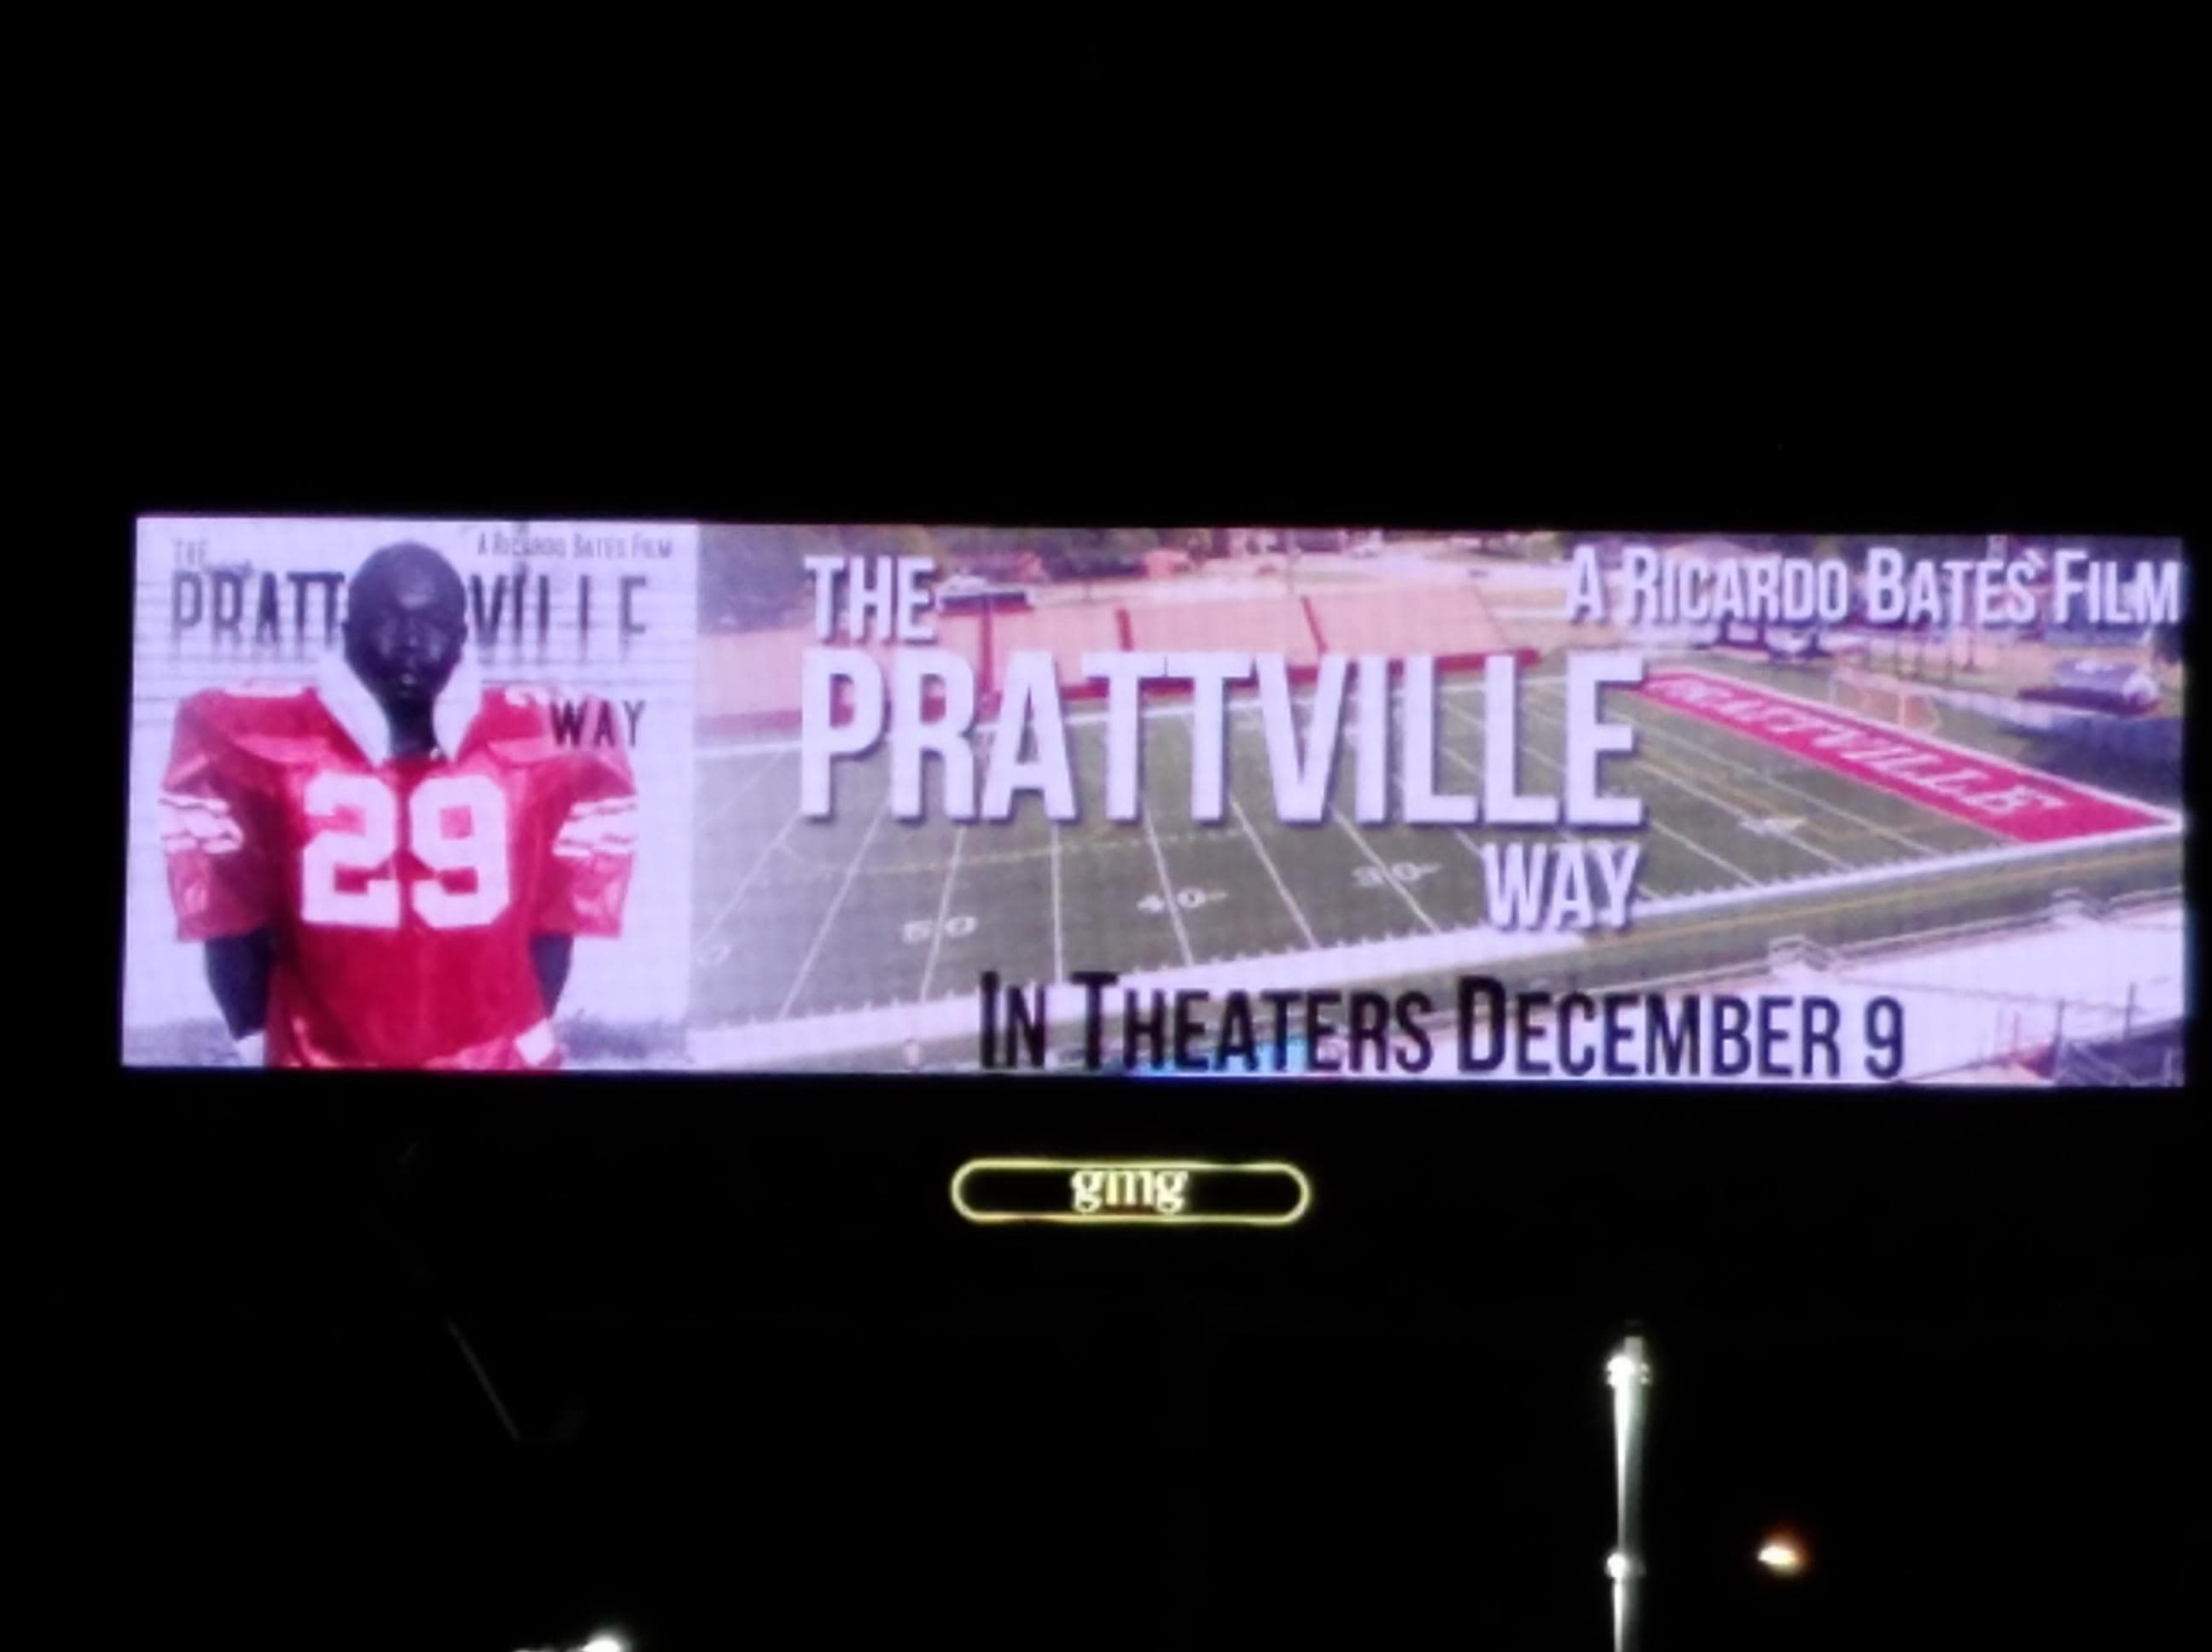 The Pratville Way Promotional Material